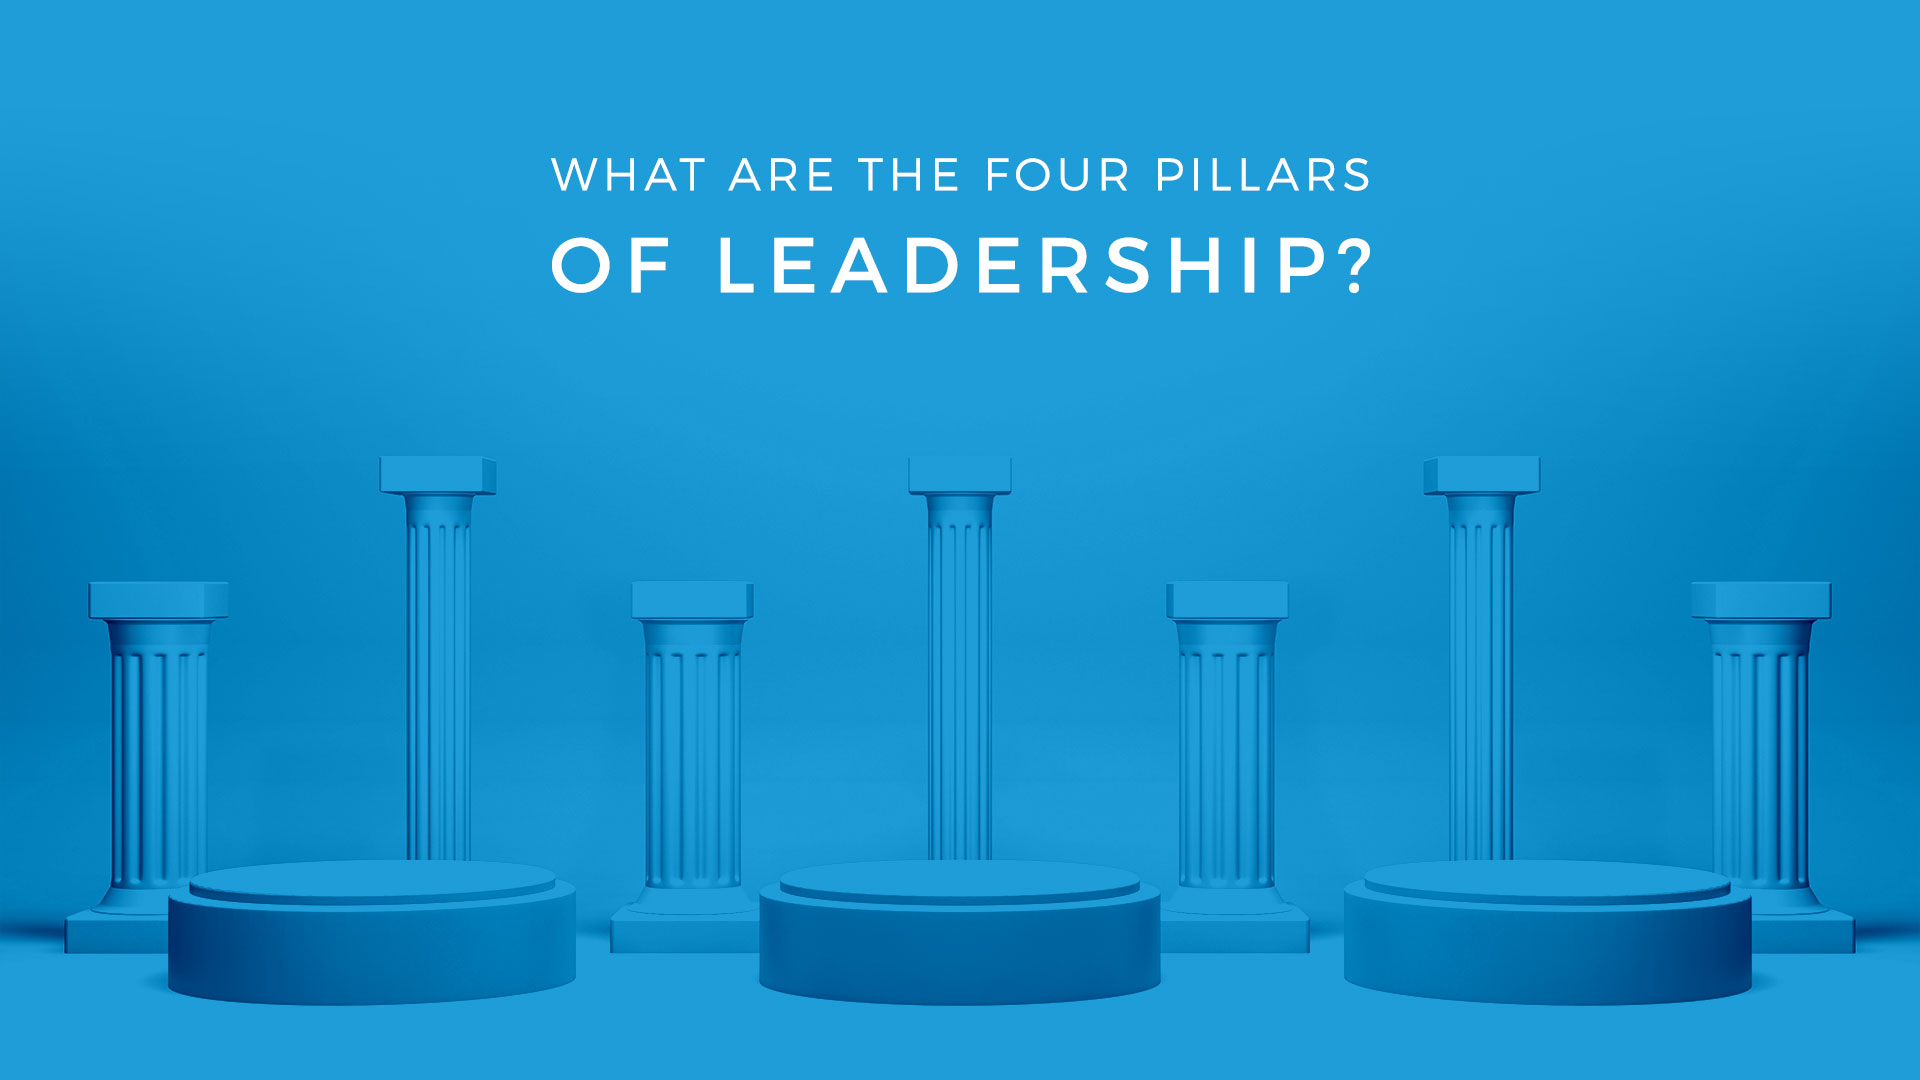 What Are the Four Pillars of Leadership?